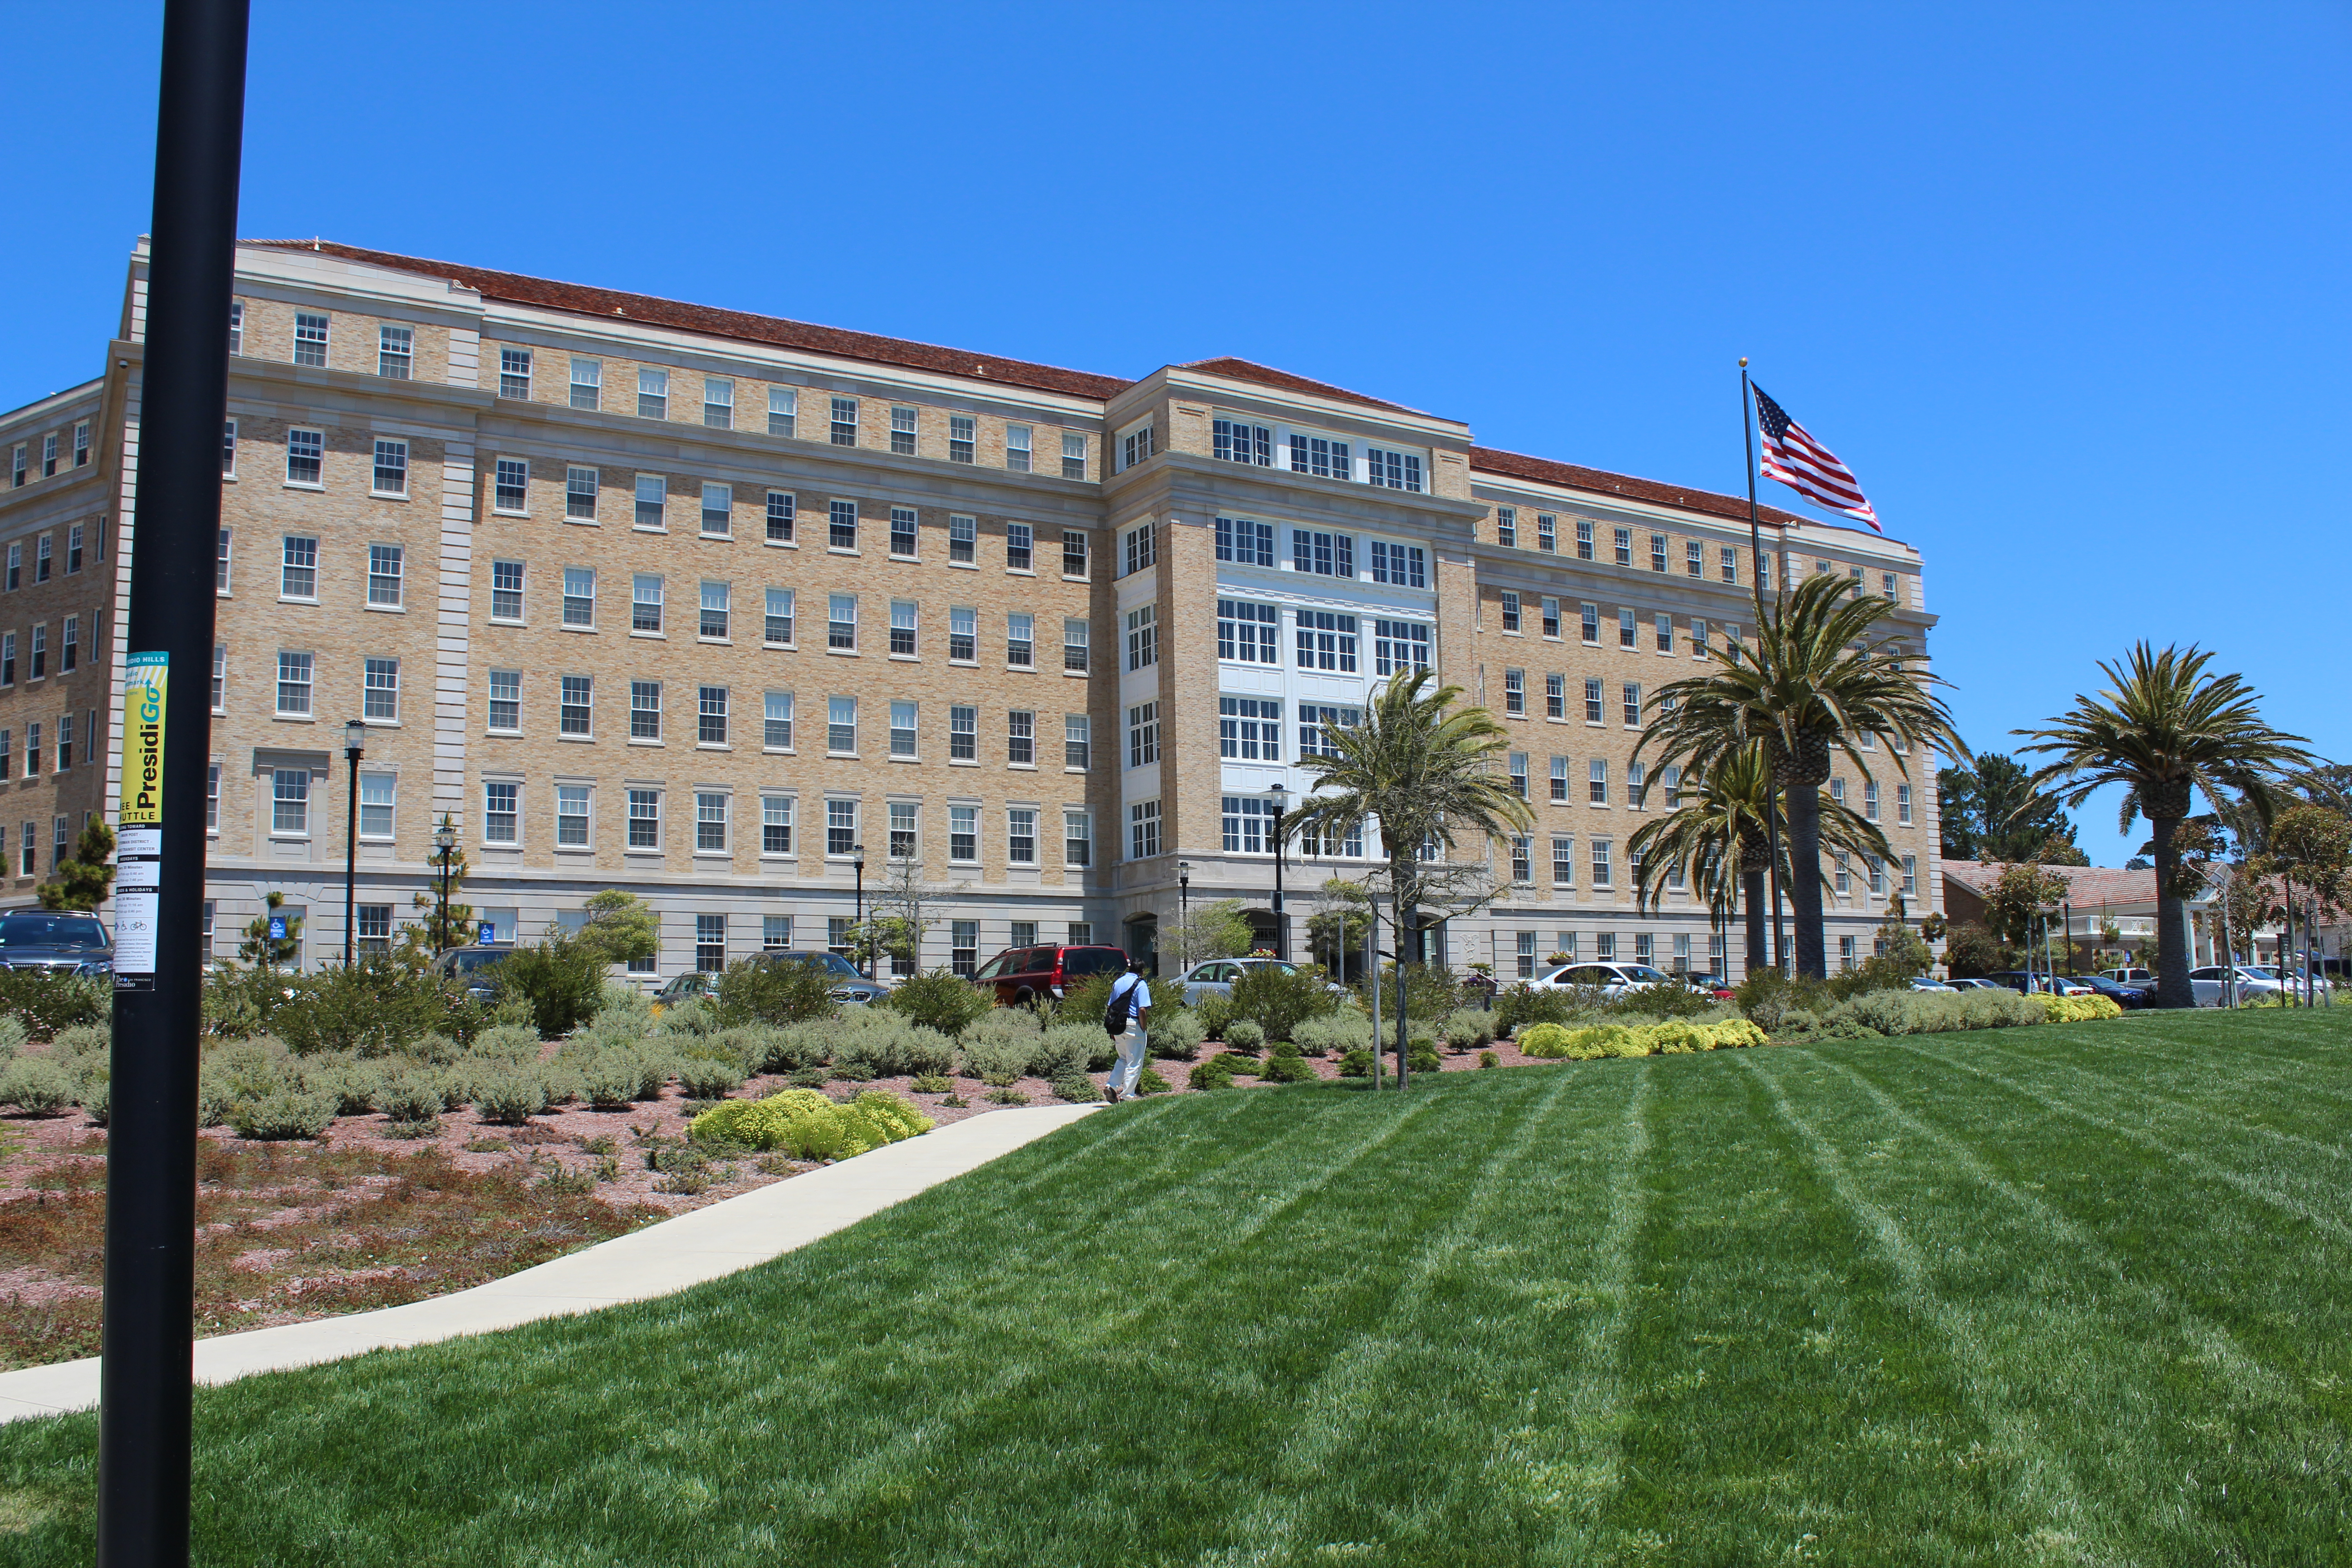 Former Marine Hospital (image from Cemetery Travel)